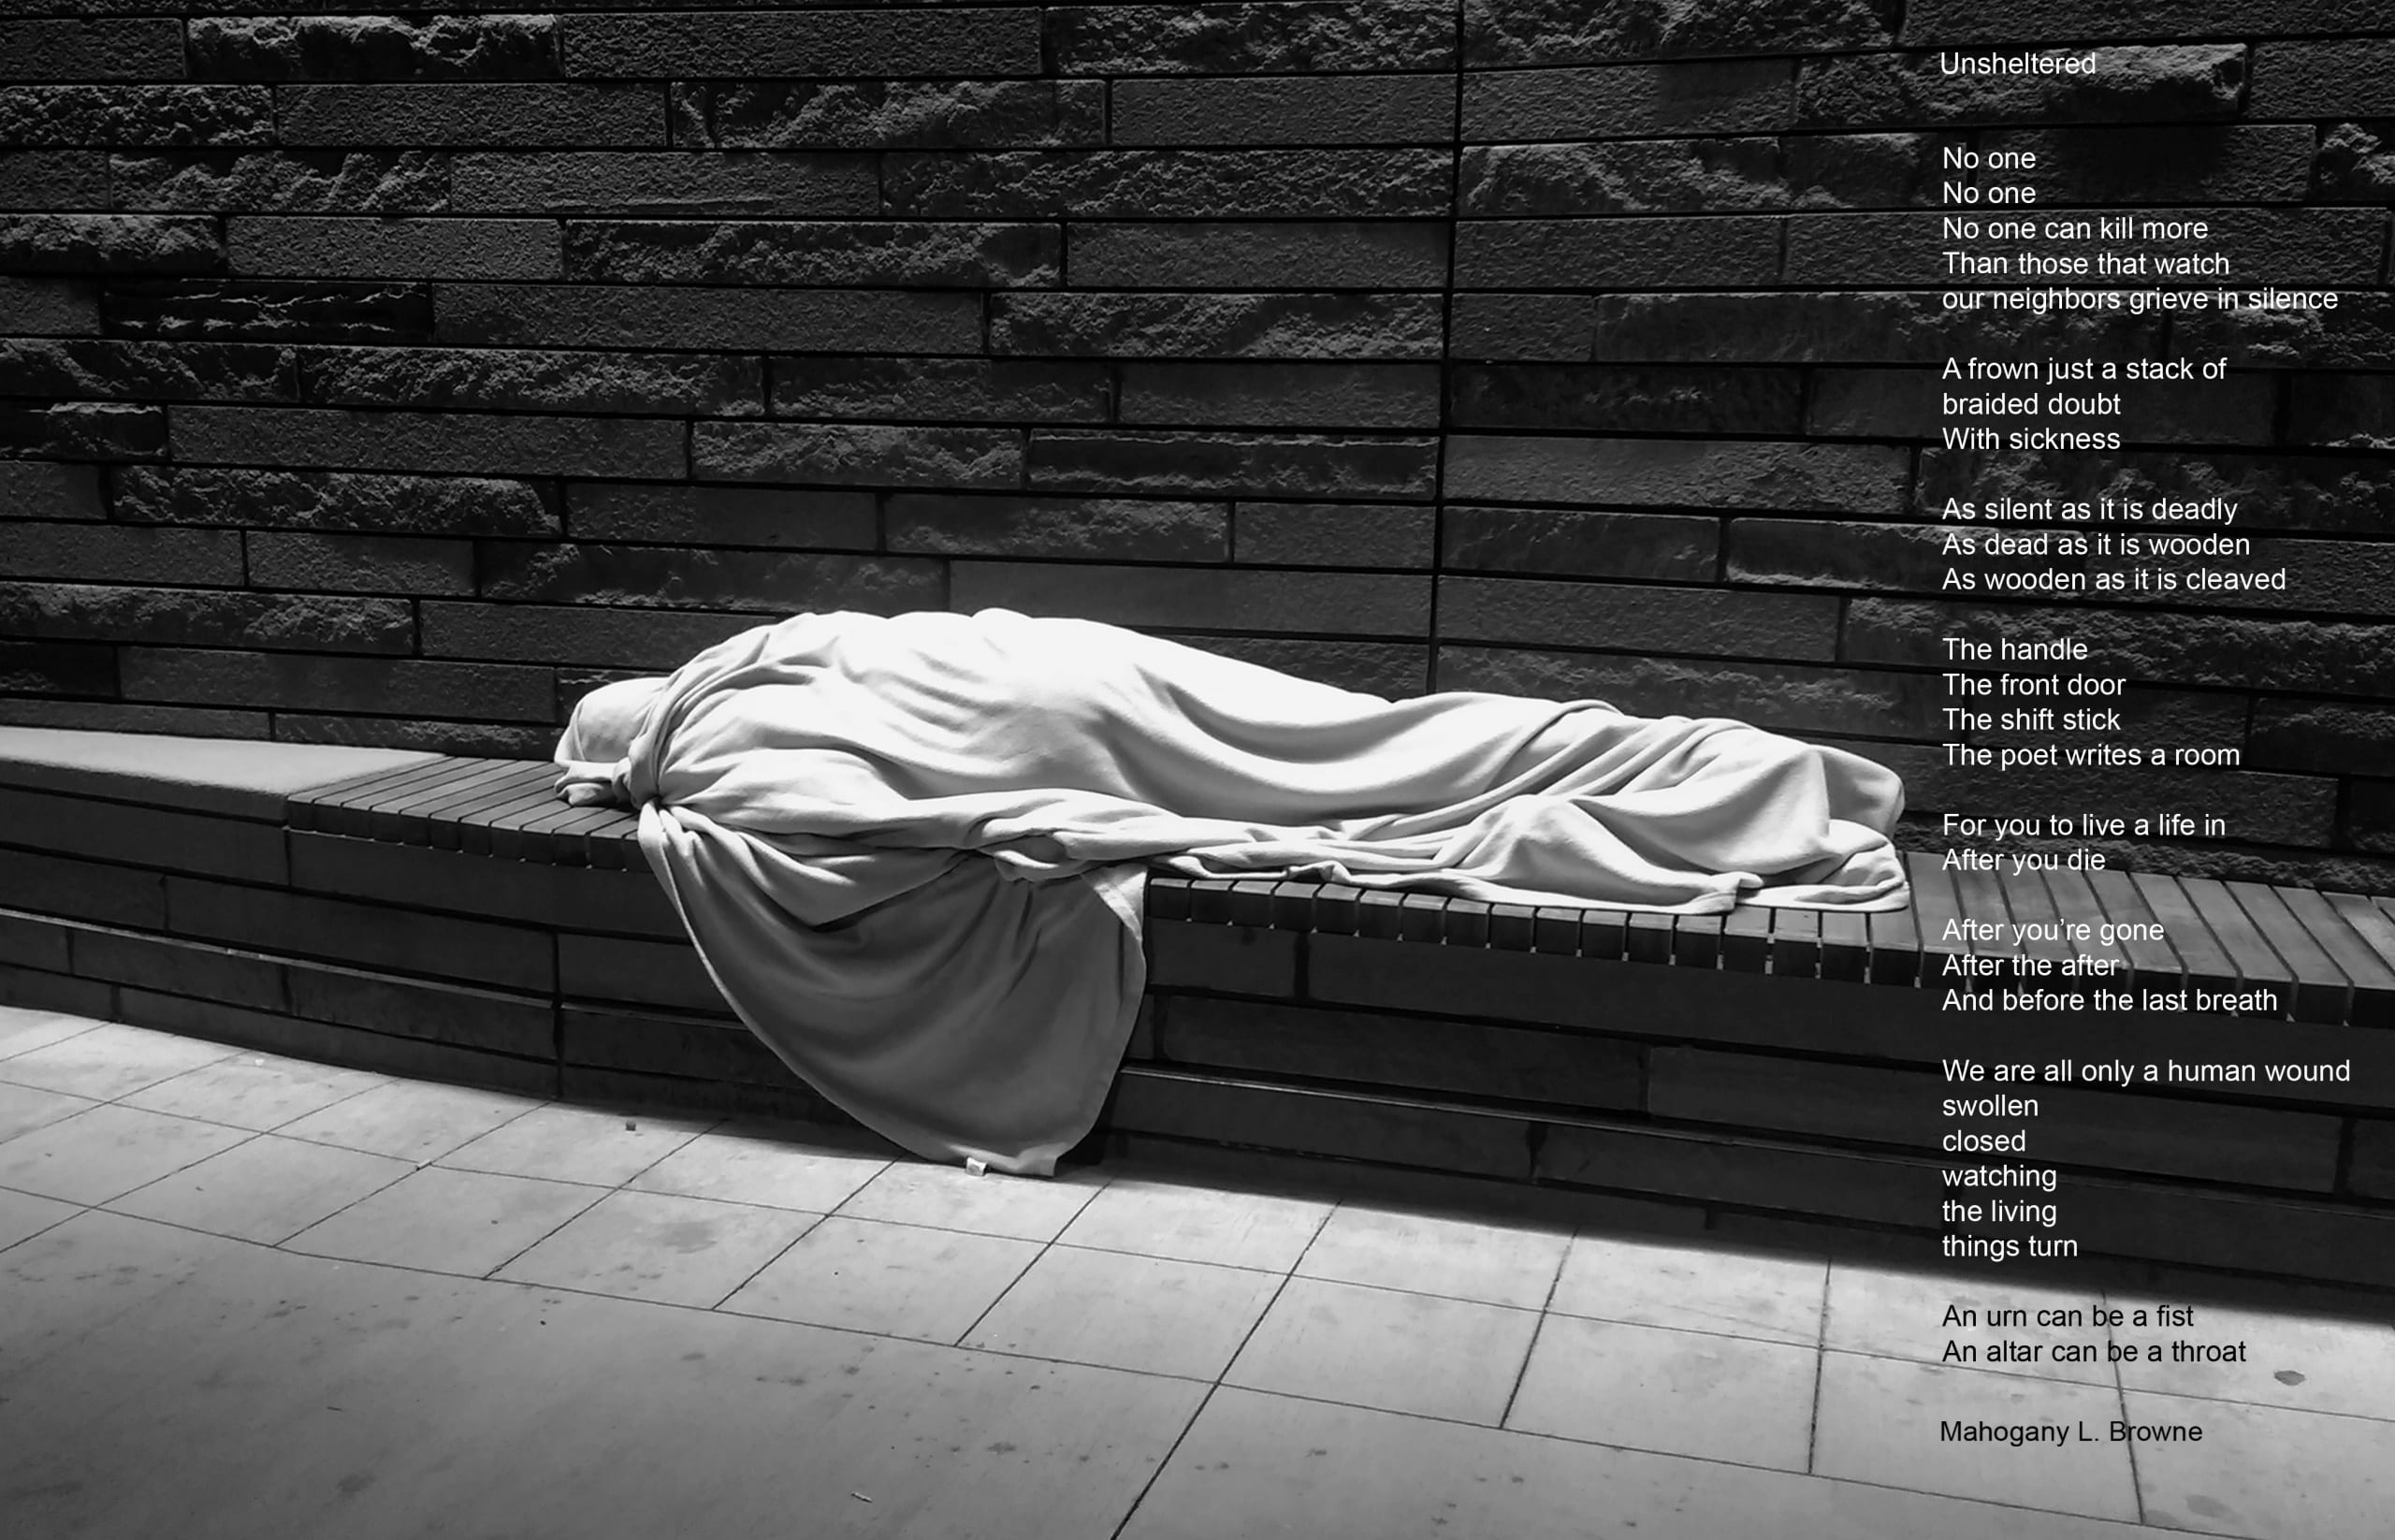 Black and white photo of figure wrapped in cloth from head to toe and laid horizontally on a low, wooden bench against a building's exterior stone wall with a poem superimposed over the right side of the image